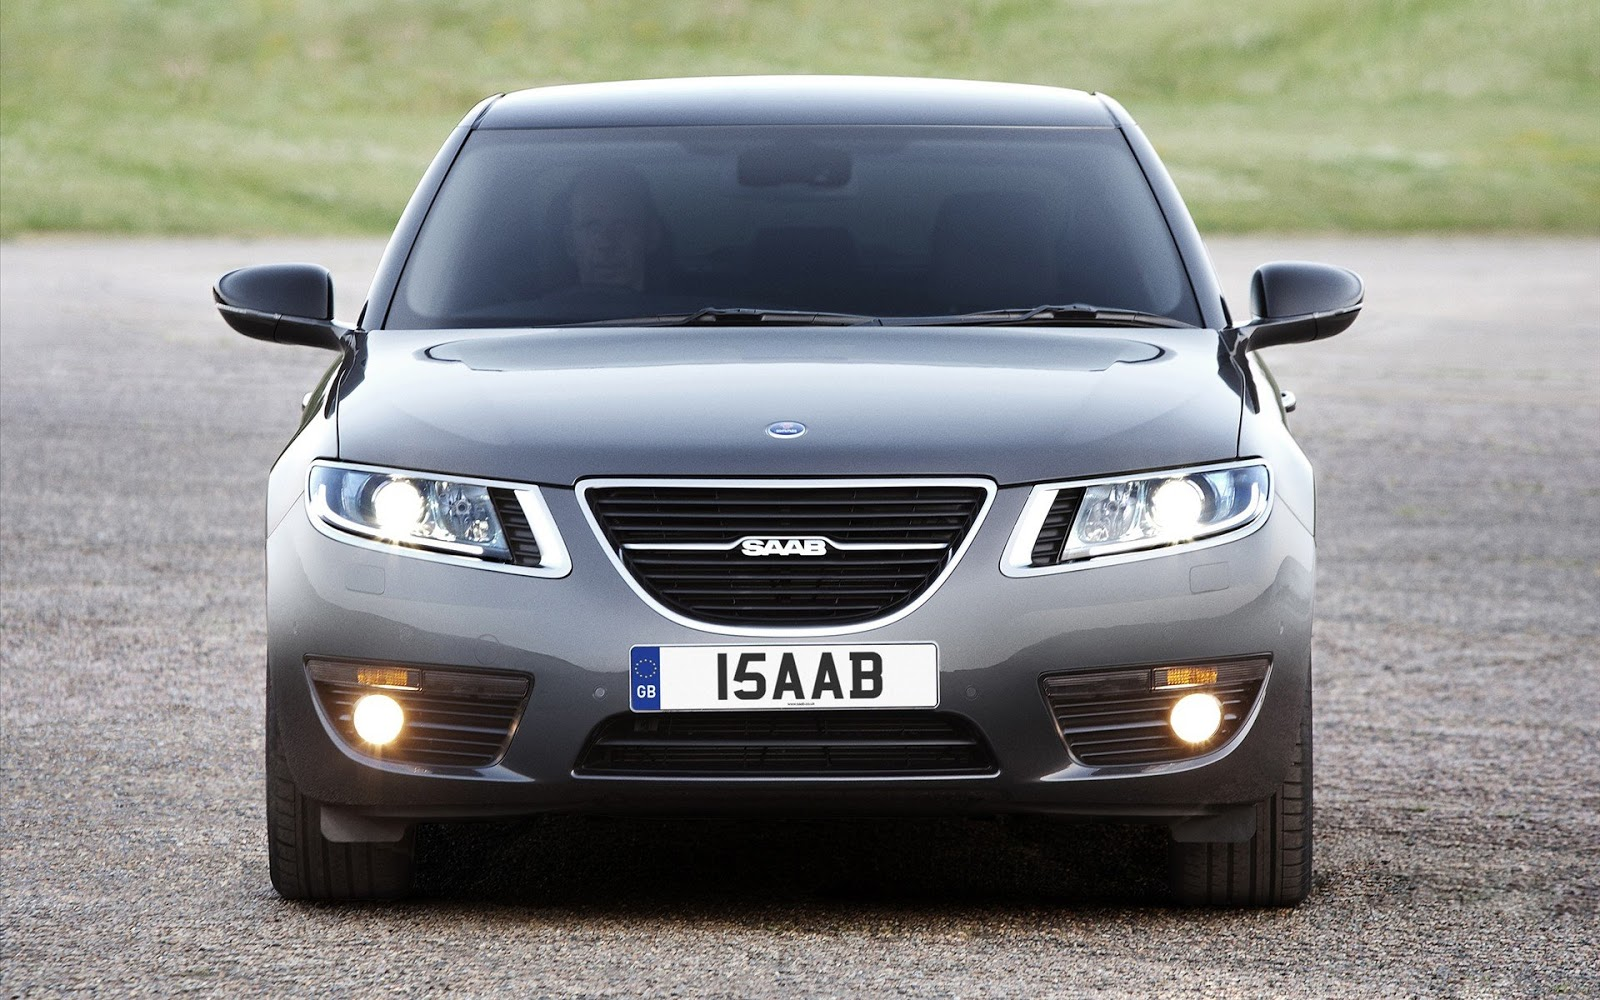 cars saab wallpaper 1920x1200 - photo #32